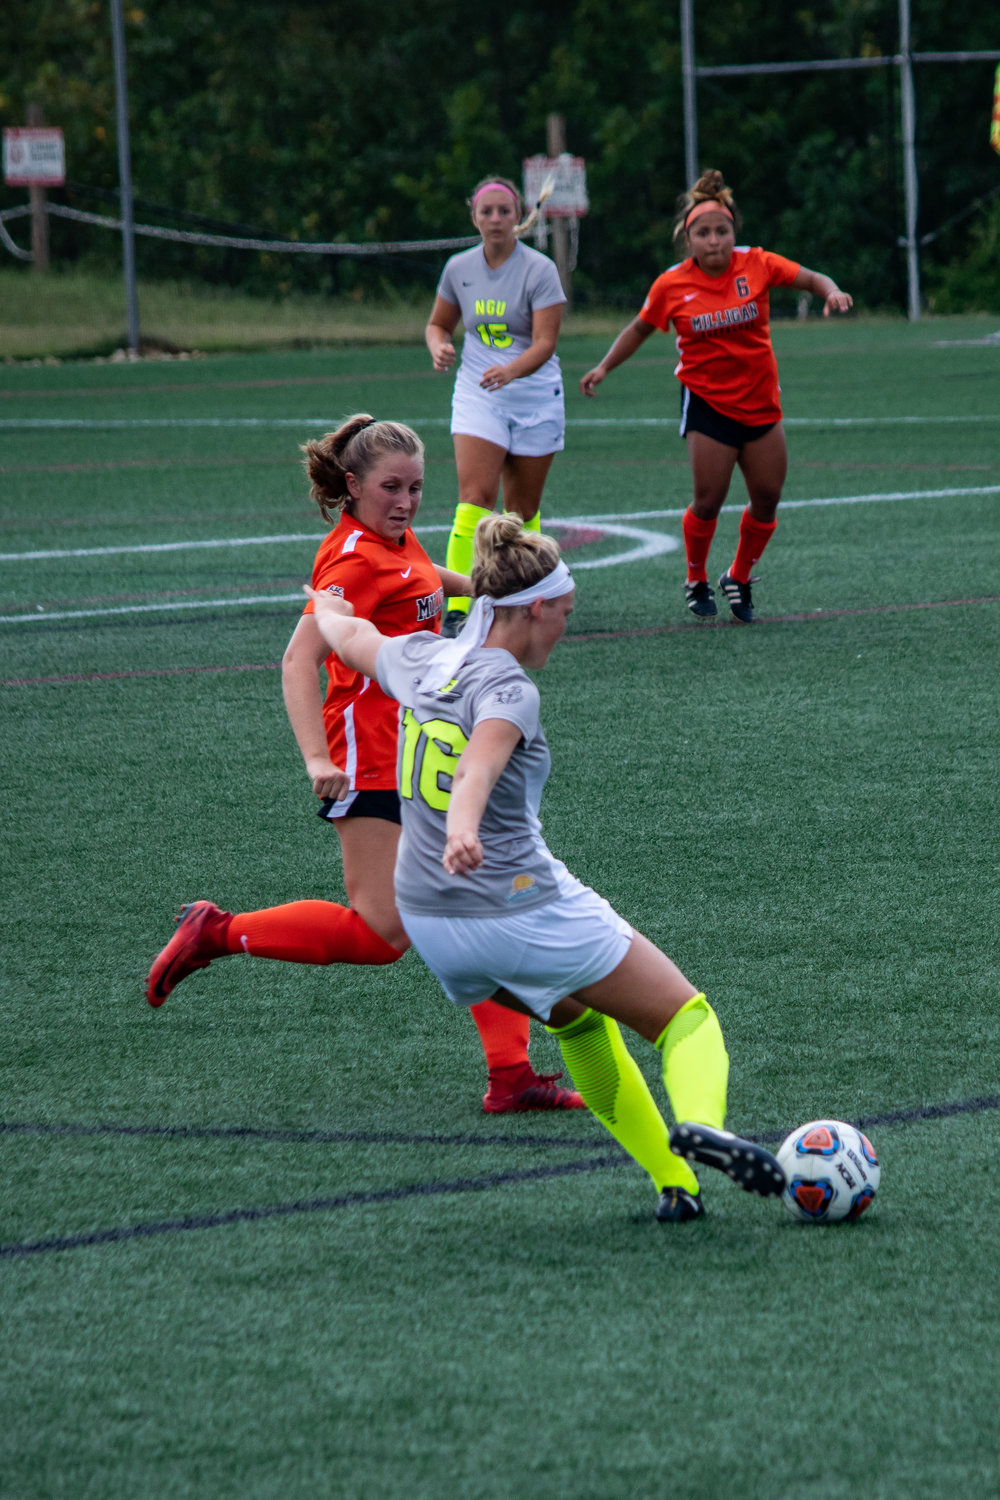 #16 Michaela Gleed prepares a strong kick to pass the ball to team member #15 Mackenzie Neff.